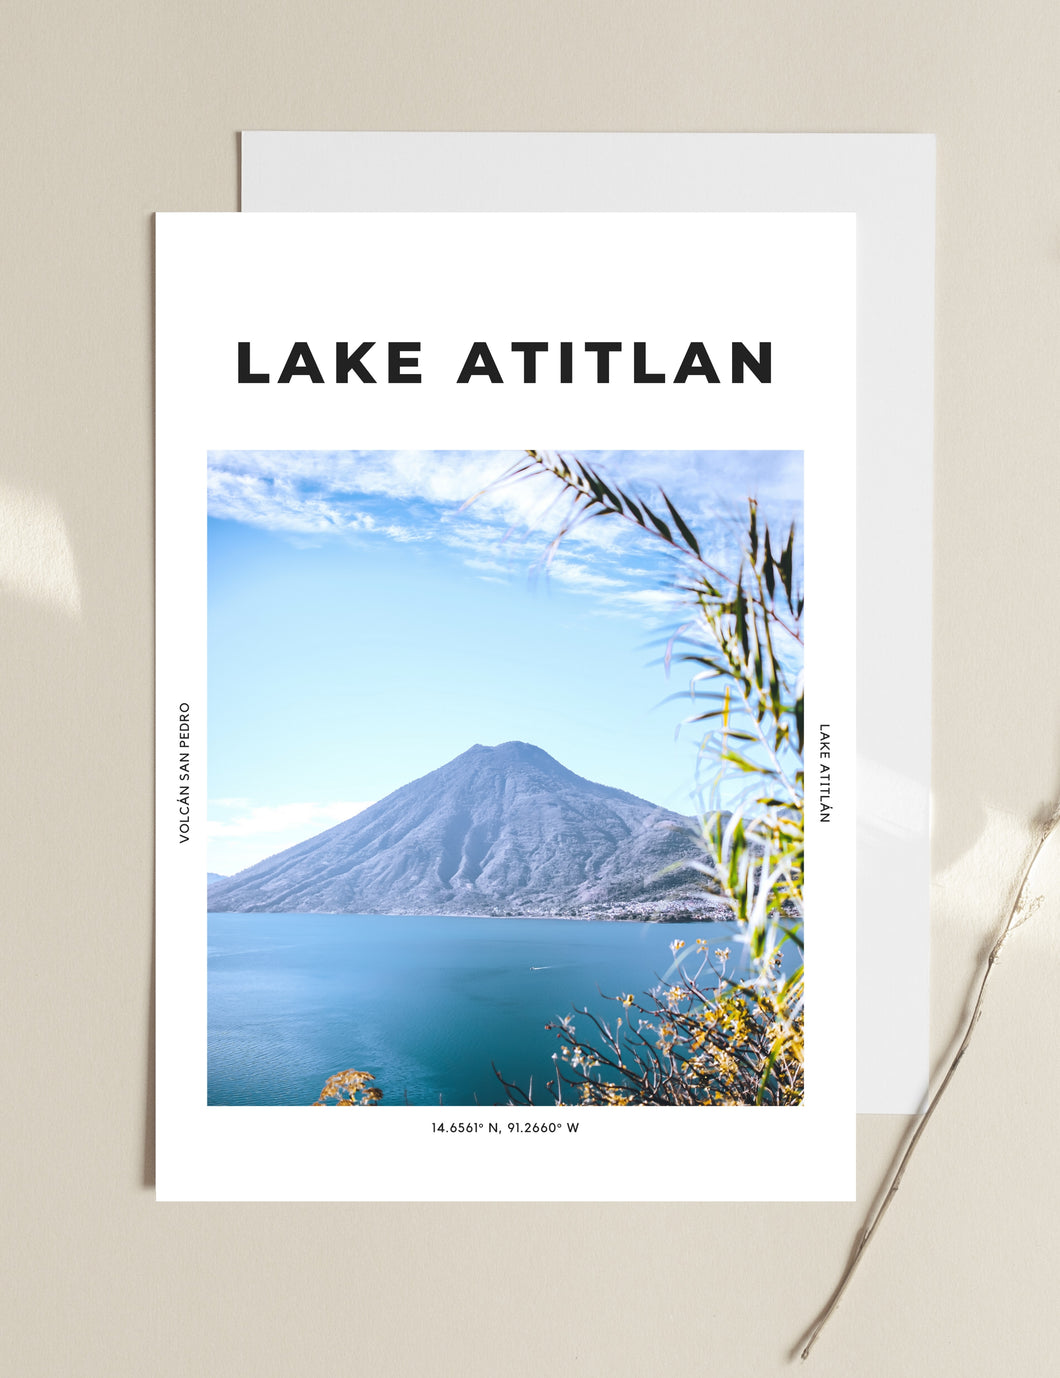 Lake Atitlan 'The Most Peaceful Place On Earth' Print